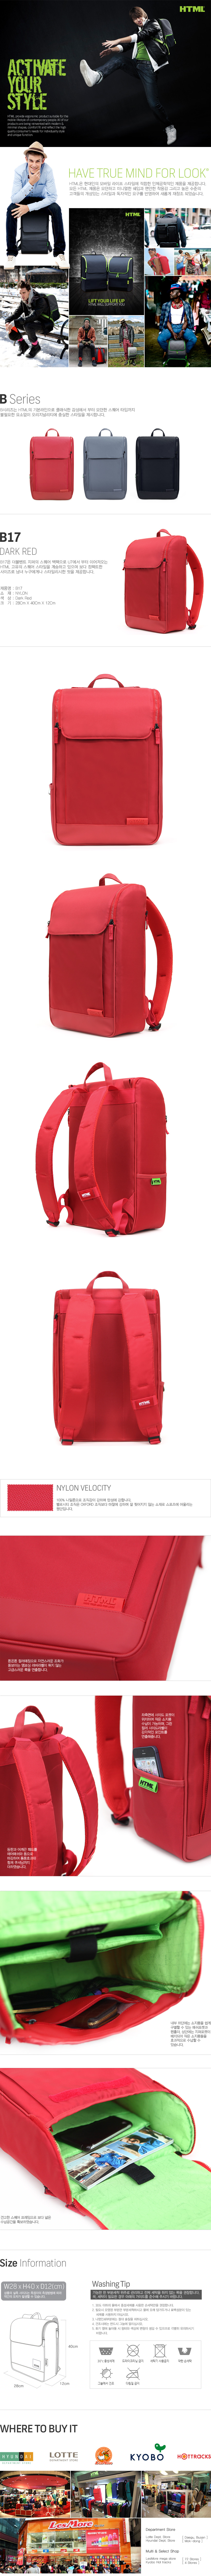 [에이치티엠엘]HTML - B17 Backpack (Dark Red) (JHD5BG17N205F0)_백팩